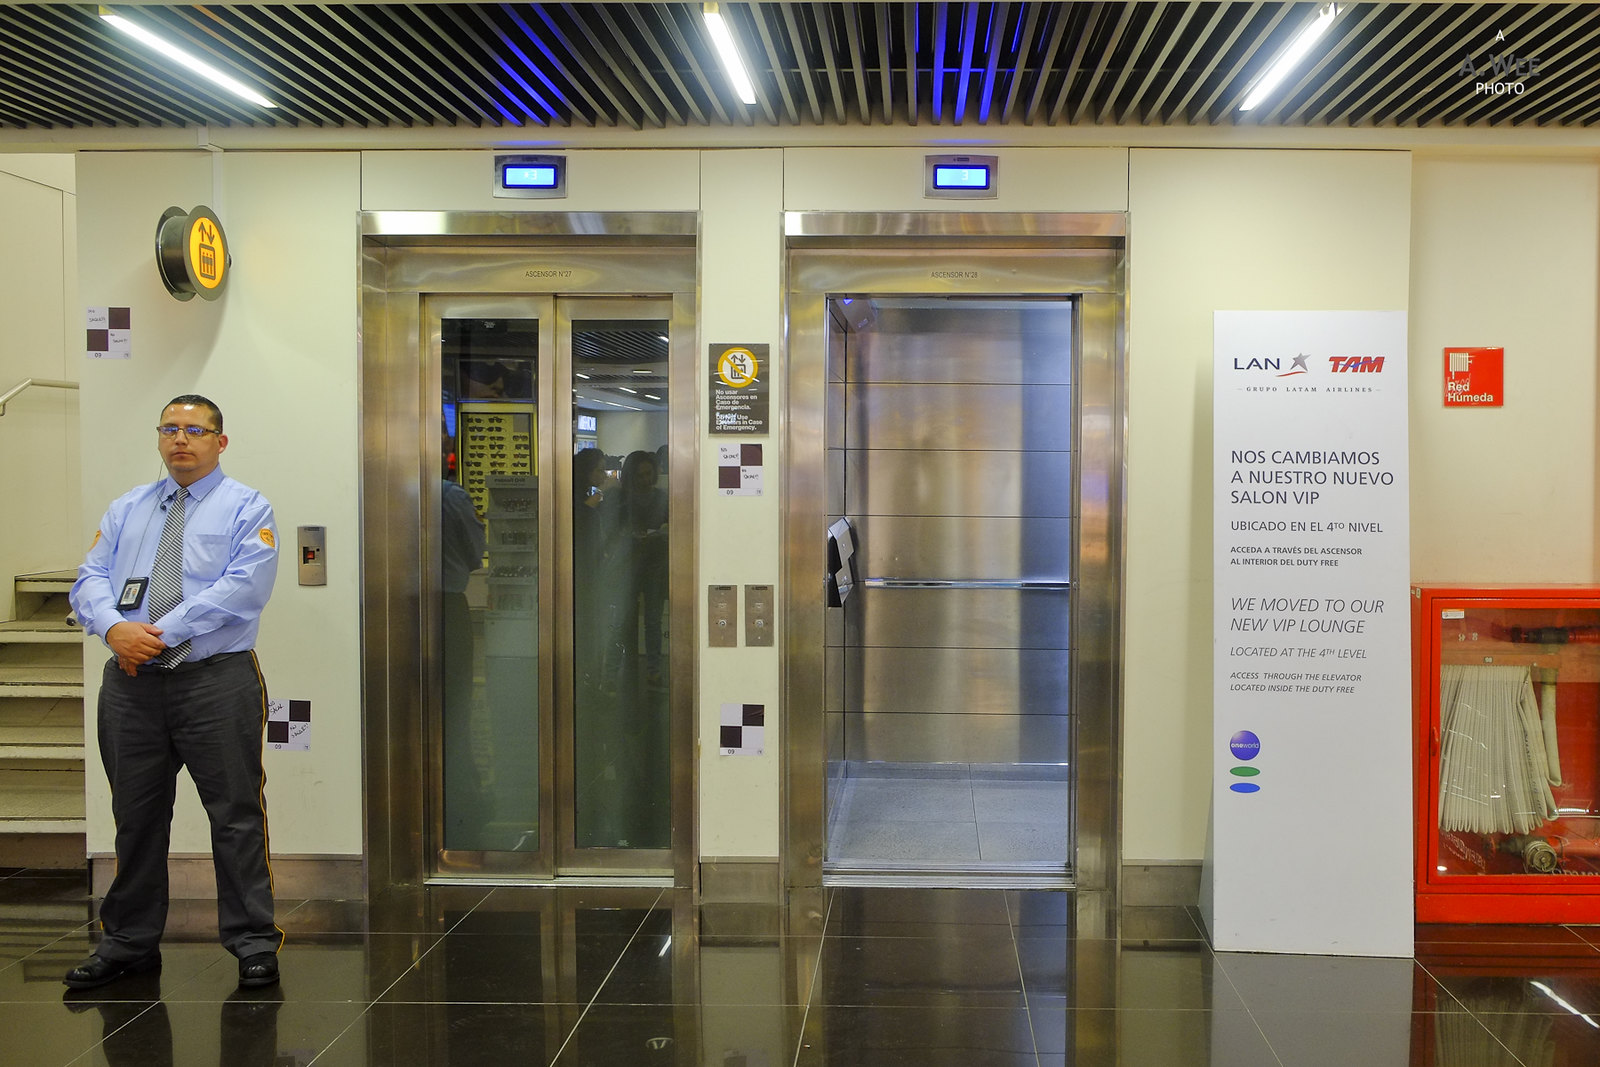 Lifts to LAN Lounge